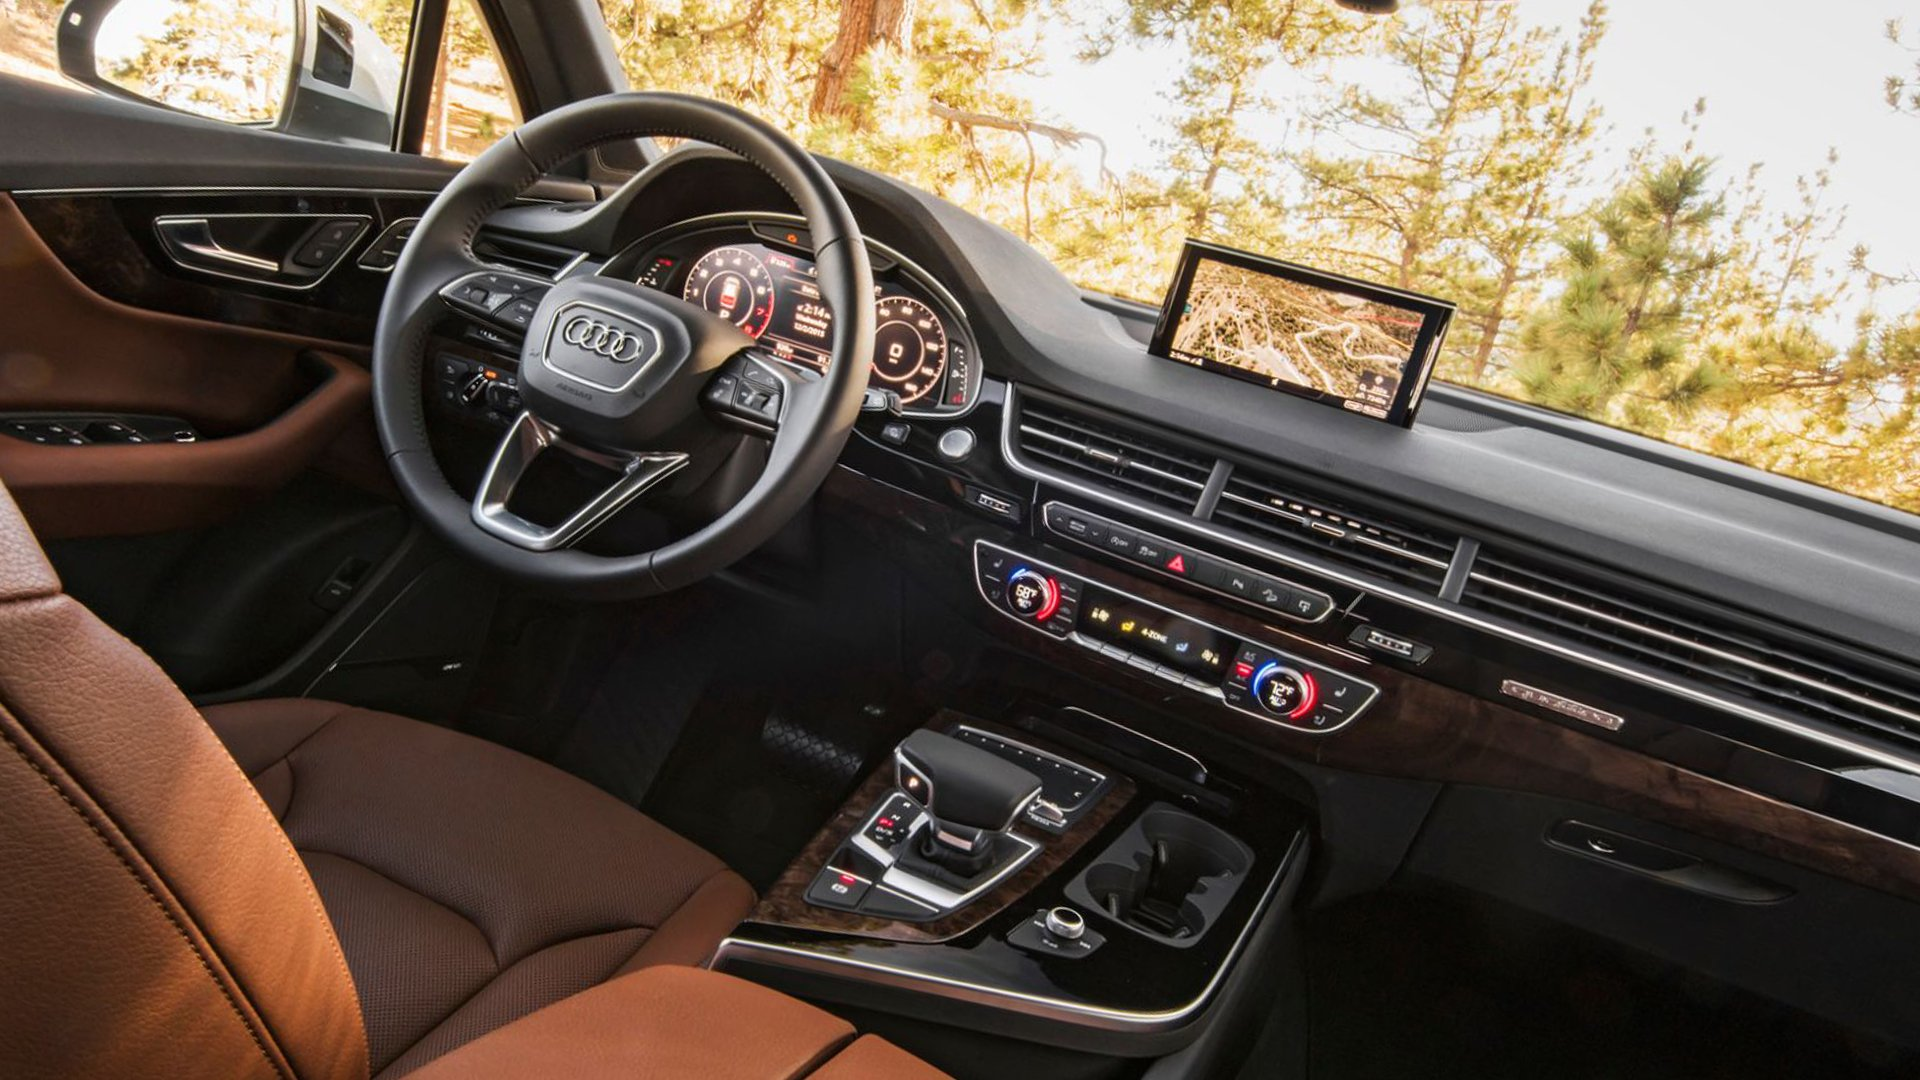 2019 Audi Q7 Interior Design New Audi Q7 what will it bring in